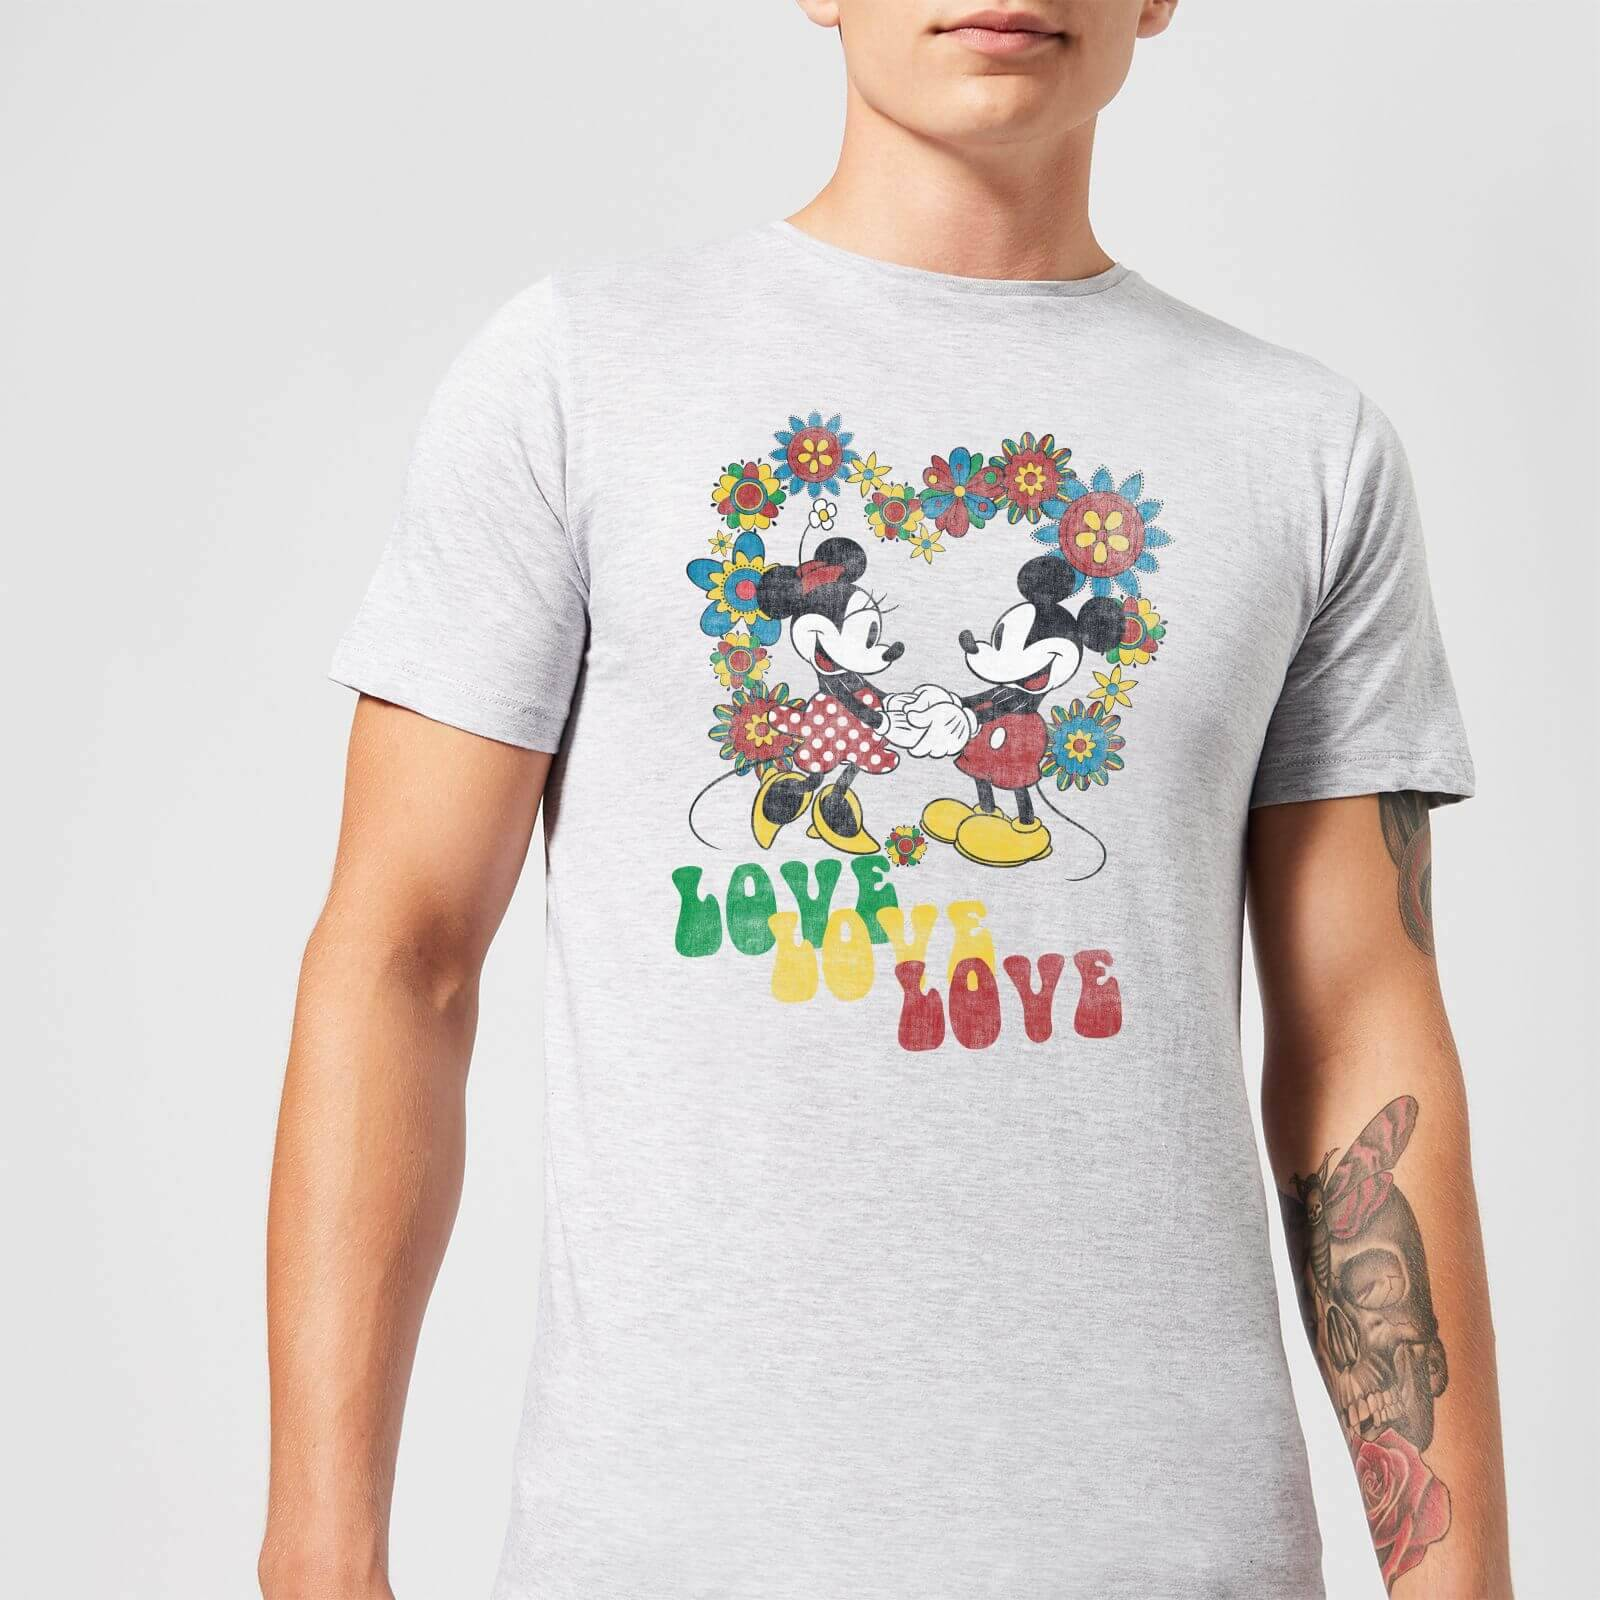 Disney Mickey Mouse Hippie Love T-Shirt - Grey - XL - Black